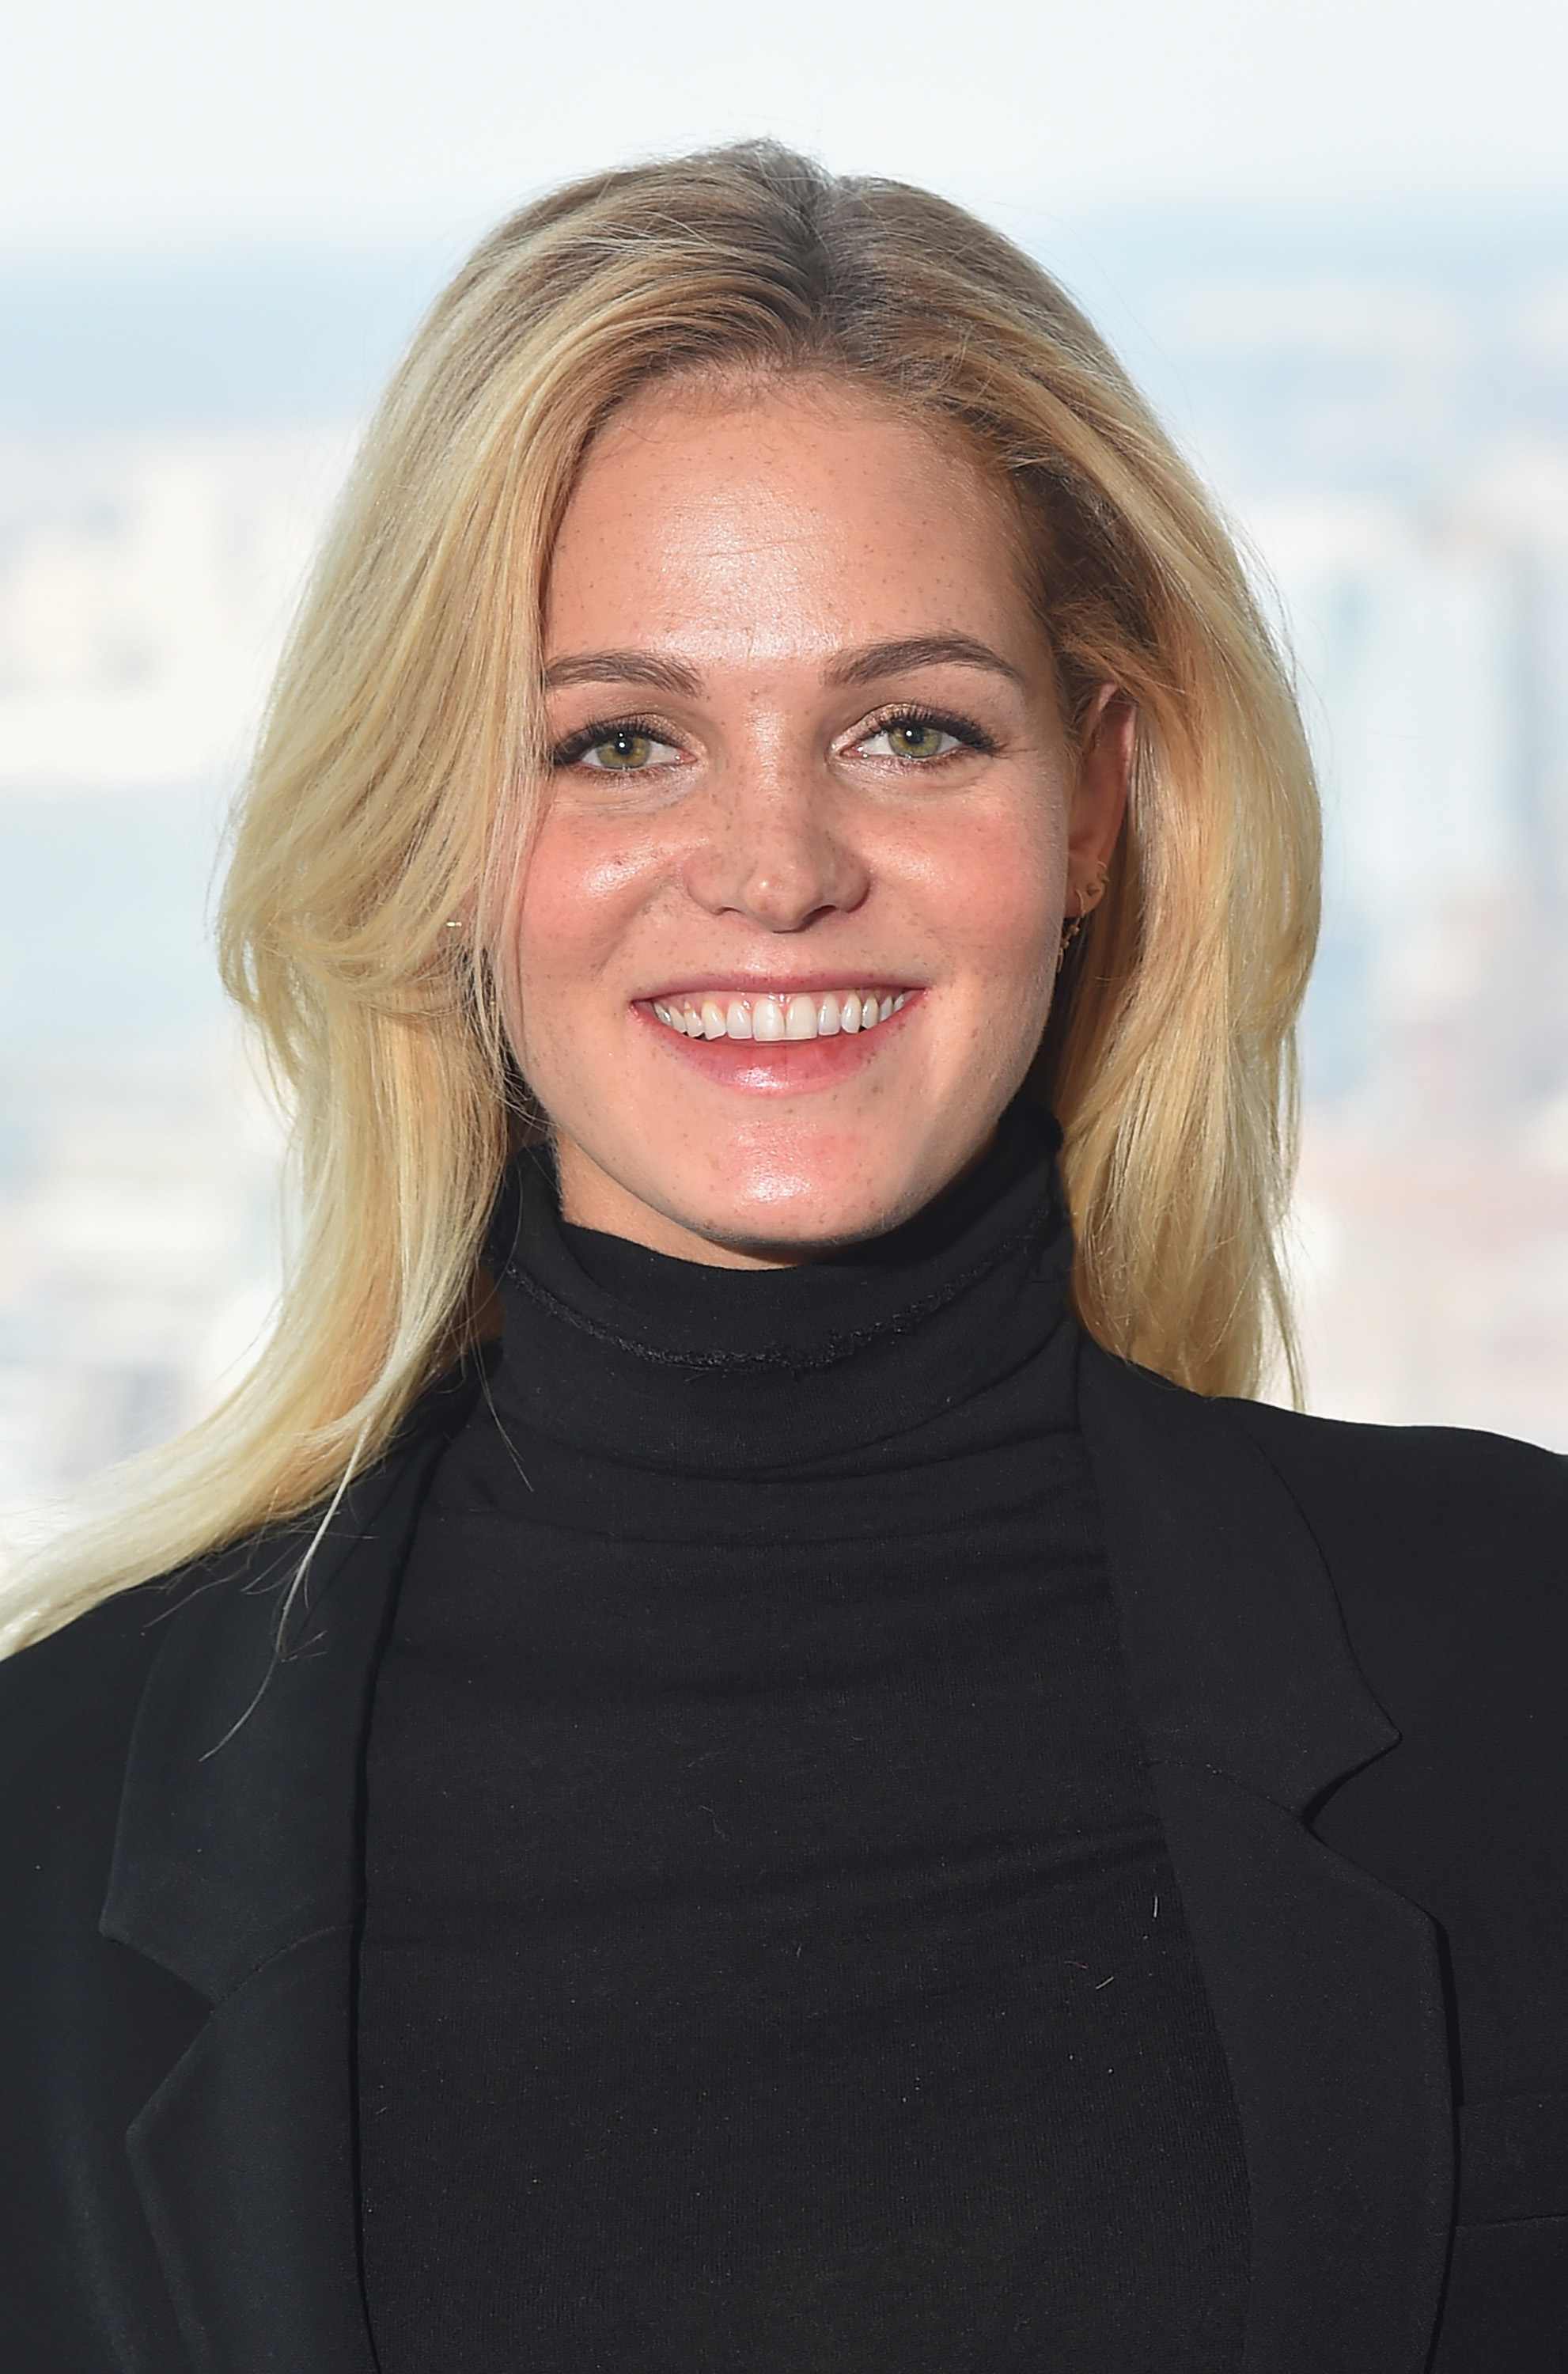 Sports Illustrated Swimsuit Model Erin Heatherton reveals SI Swimsuit 2016 launch week events in New York City at One World Observatory